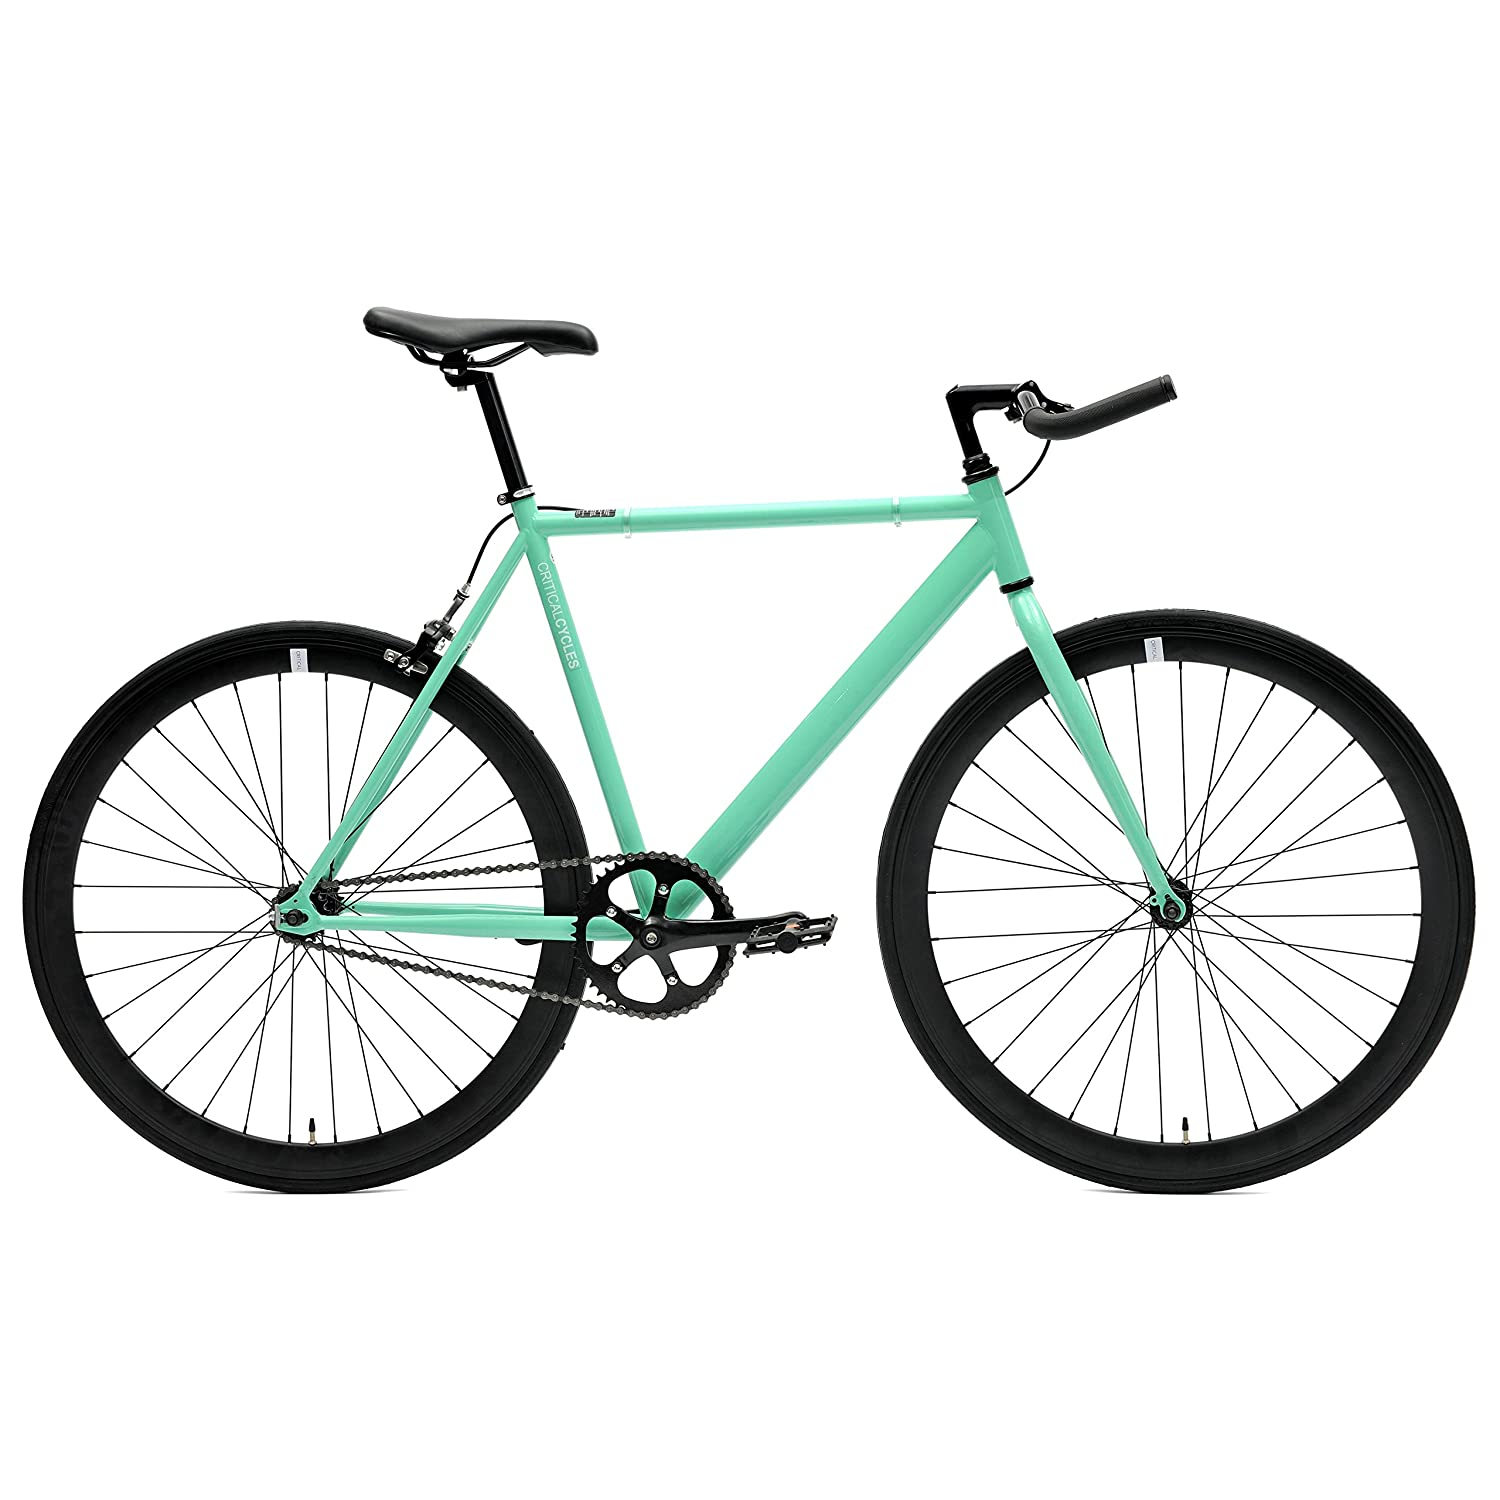 critical cycles classic fixed gear single speed track bike. Black Bedroom Furniture Sets. Home Design Ideas